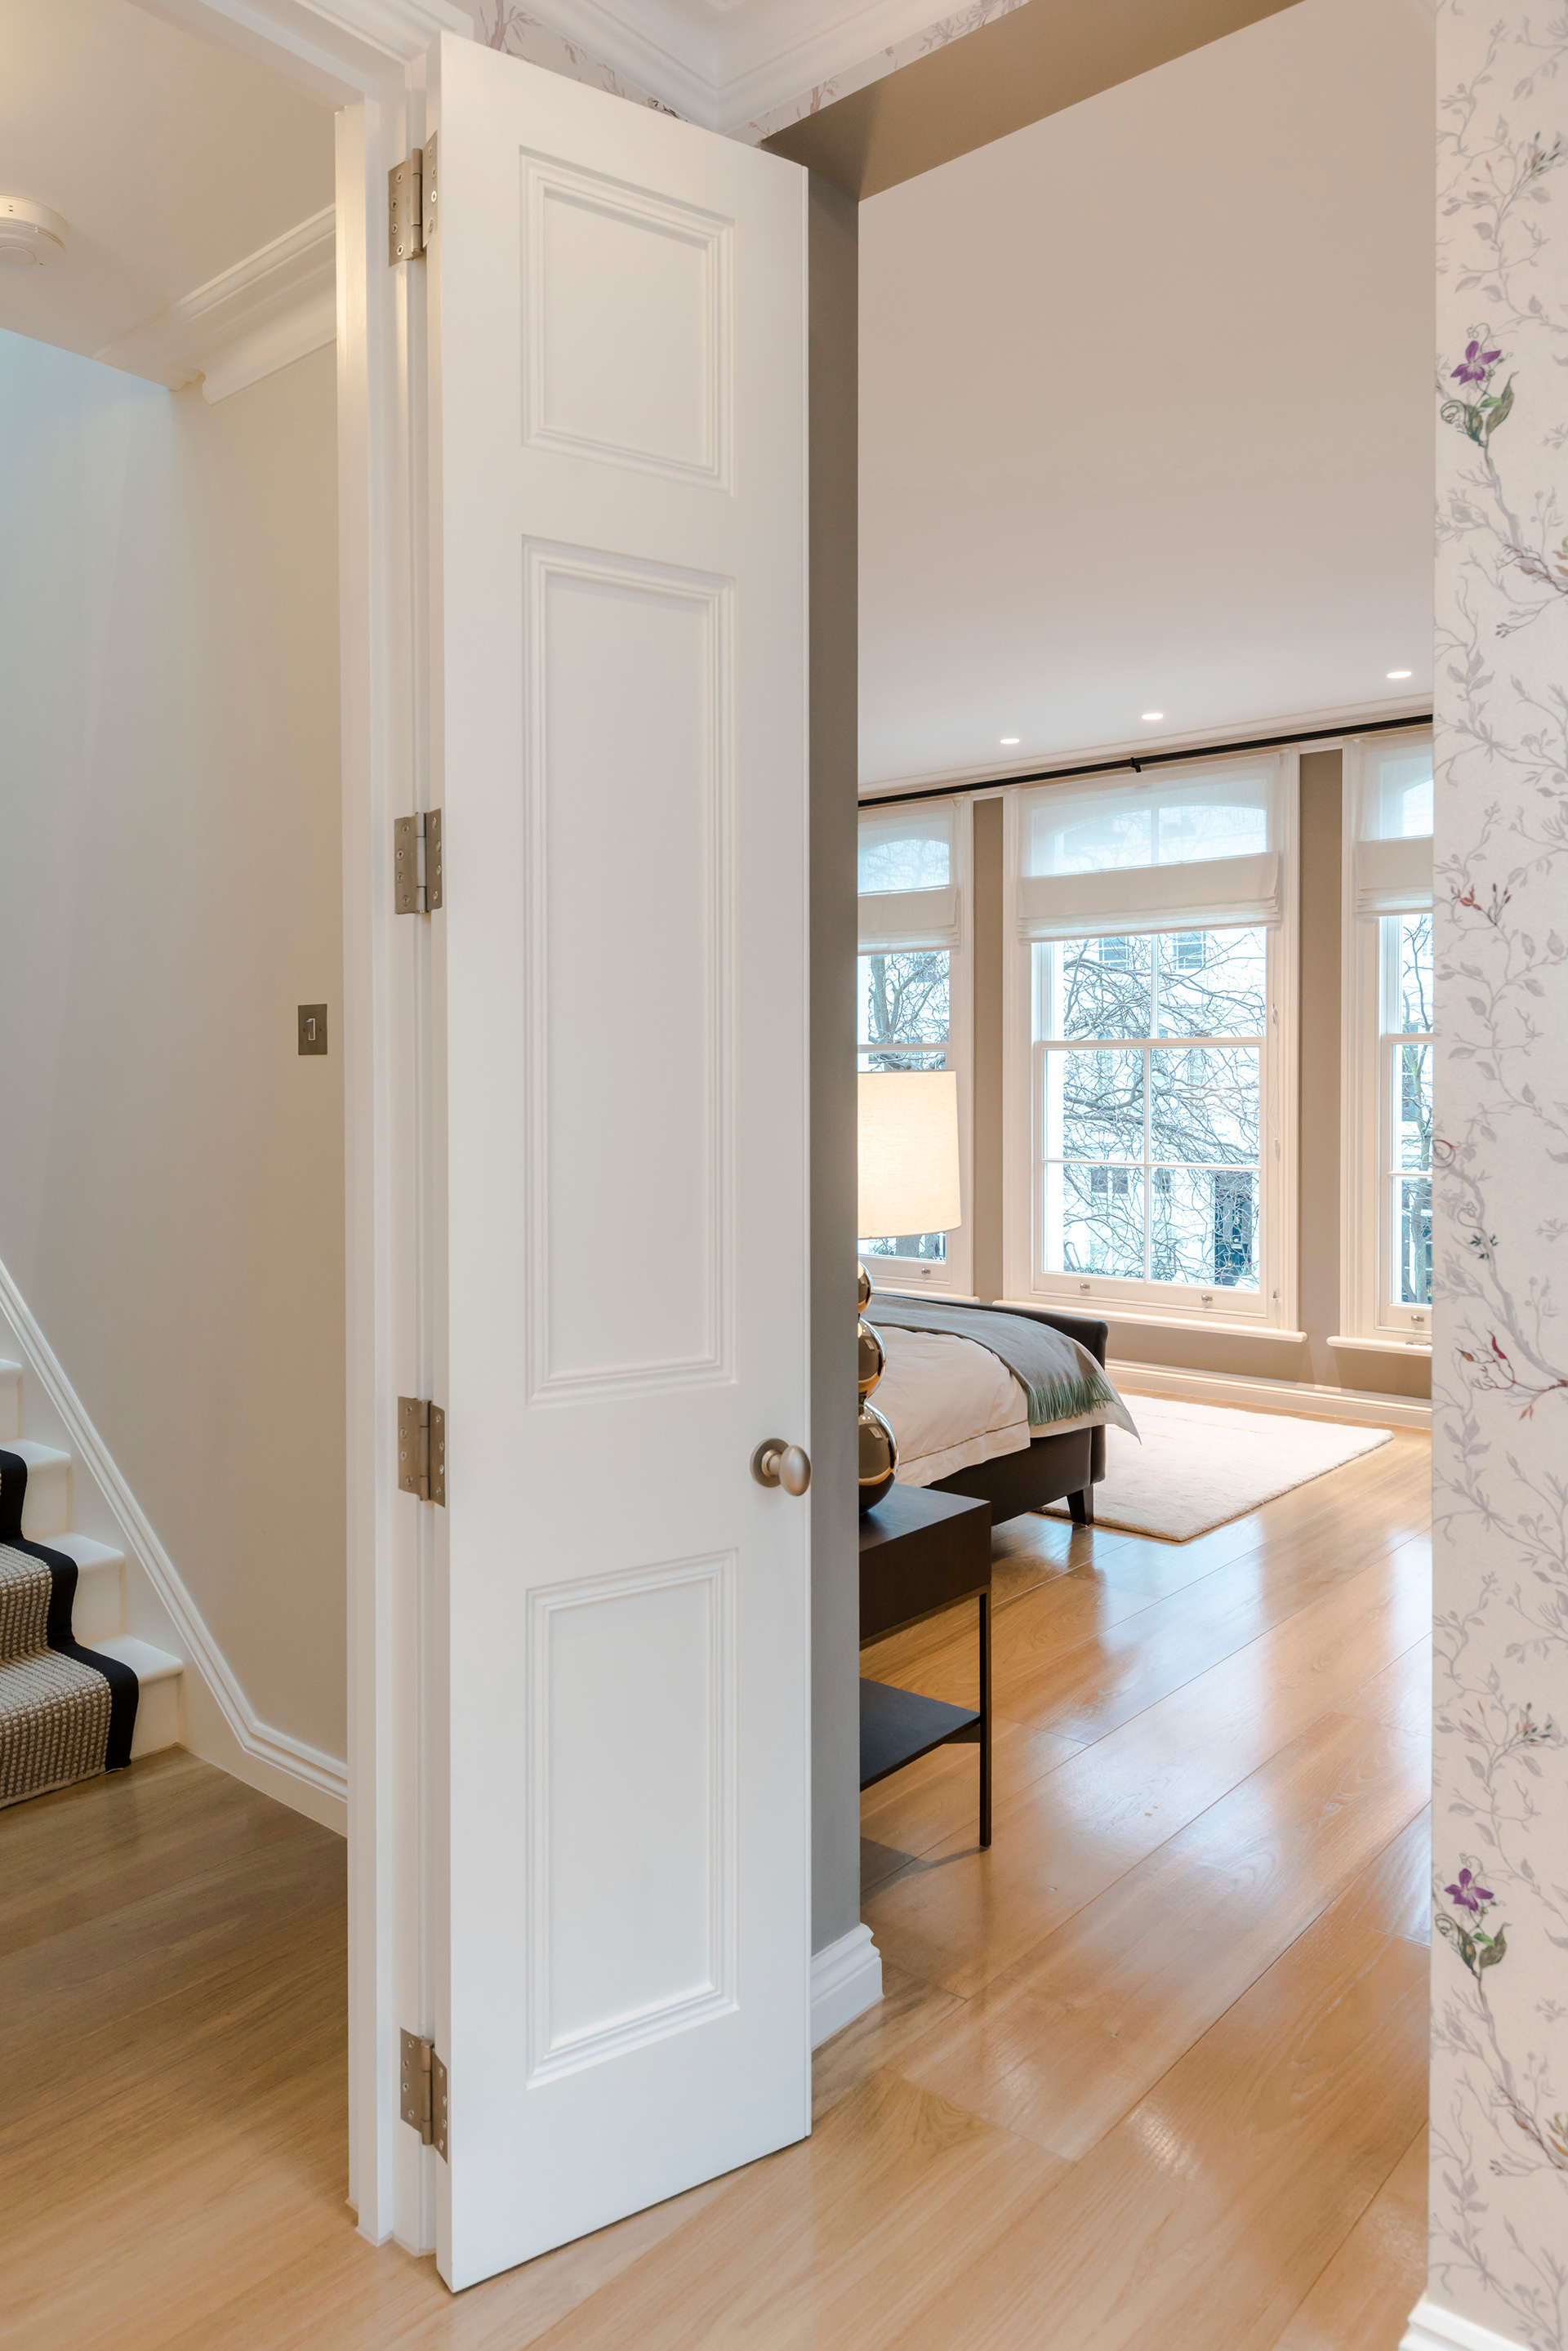 Studio 29 residential architects refurbishment kensington 5